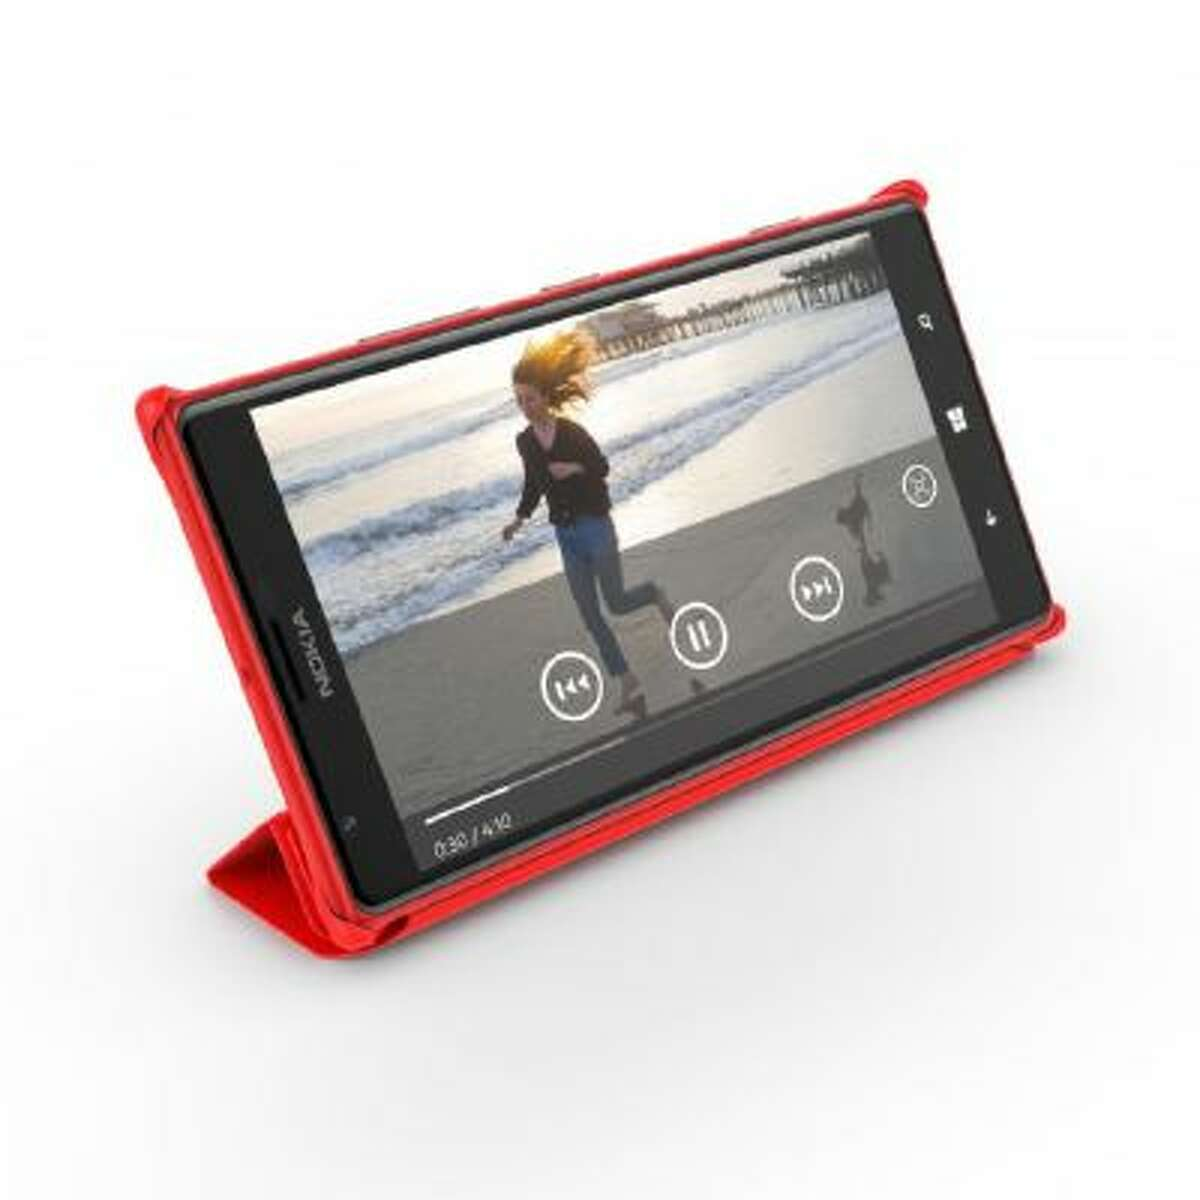 This undated product image provided by Nokia shows the the Nokia Lumia 1520. The 1520 is a Window 8 phone and among the first of its size, made possible by a mid-October software update from Microsoft.